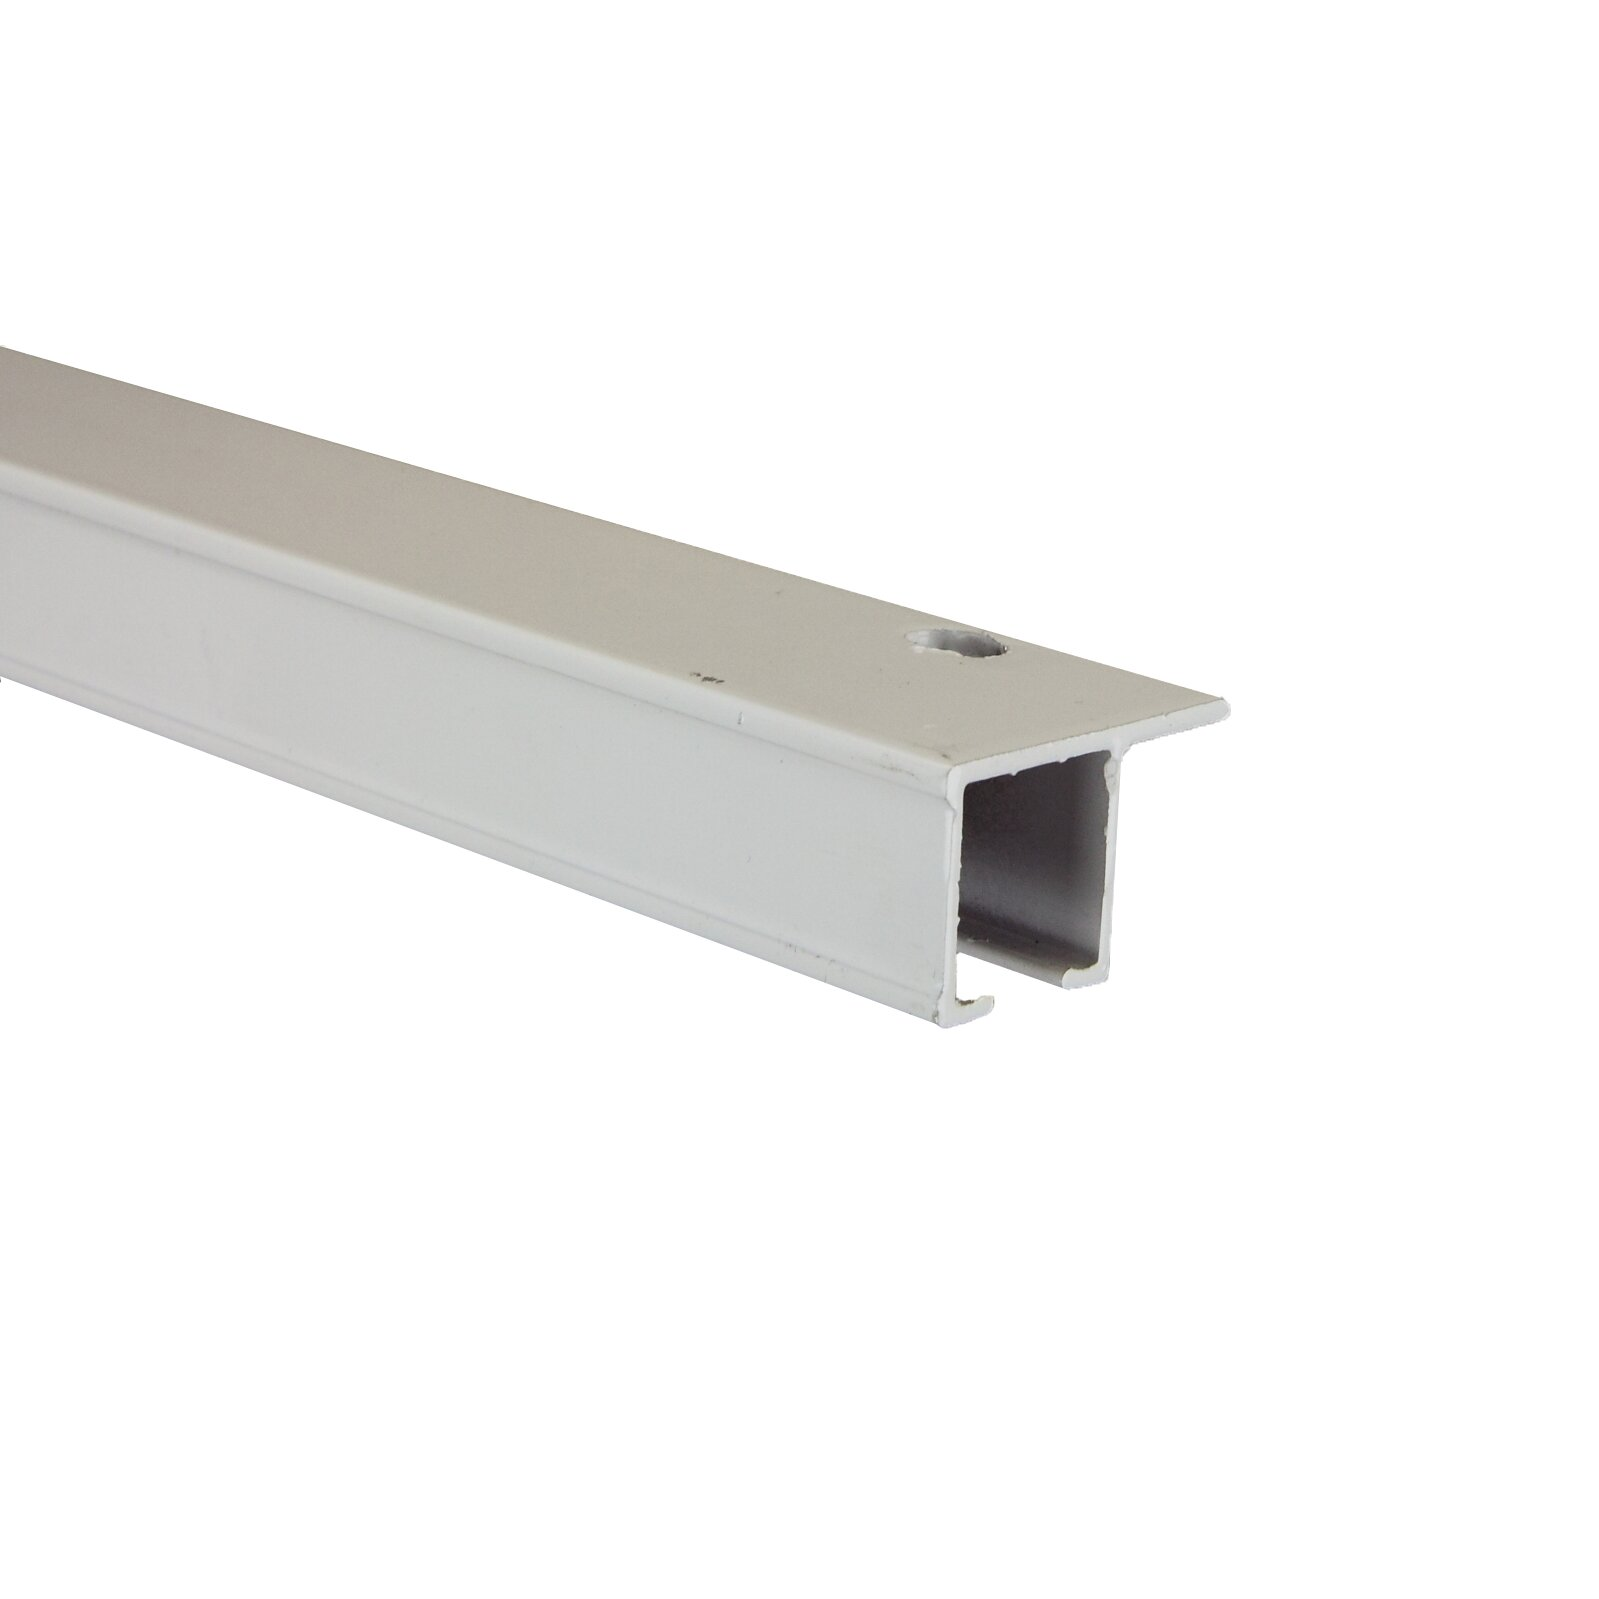 Rod Desyne Commercial Ceiling Curtain Track Kit & Reviews